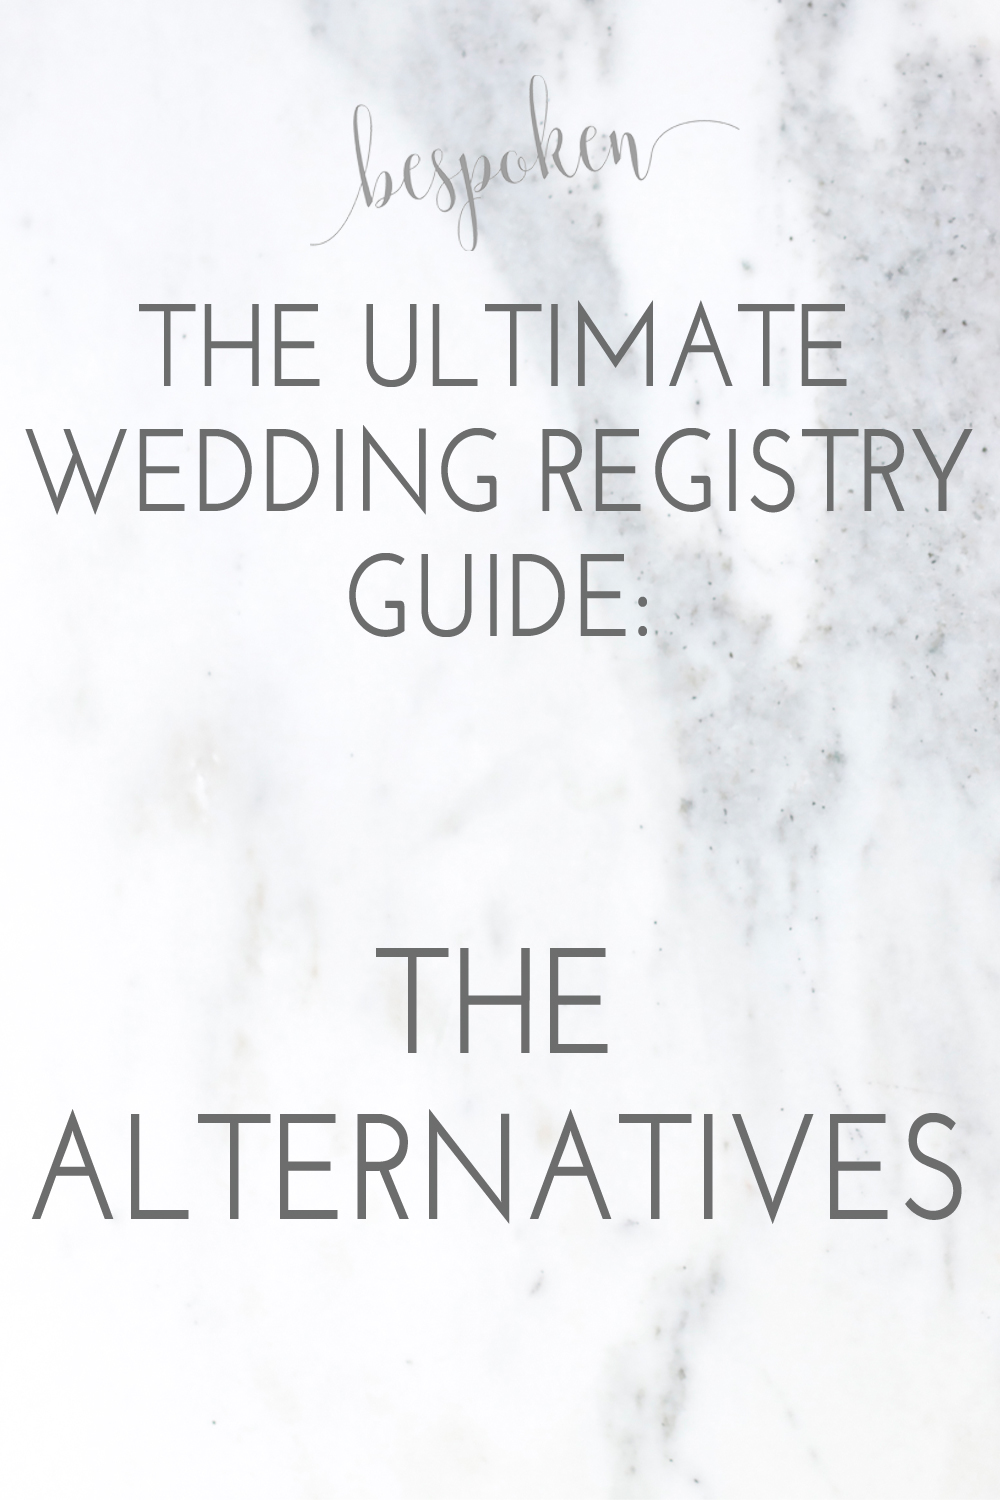 The Ultimate Wedding Registry Guide: Alternative Registries | Bespoken www.bespokenweddings.com